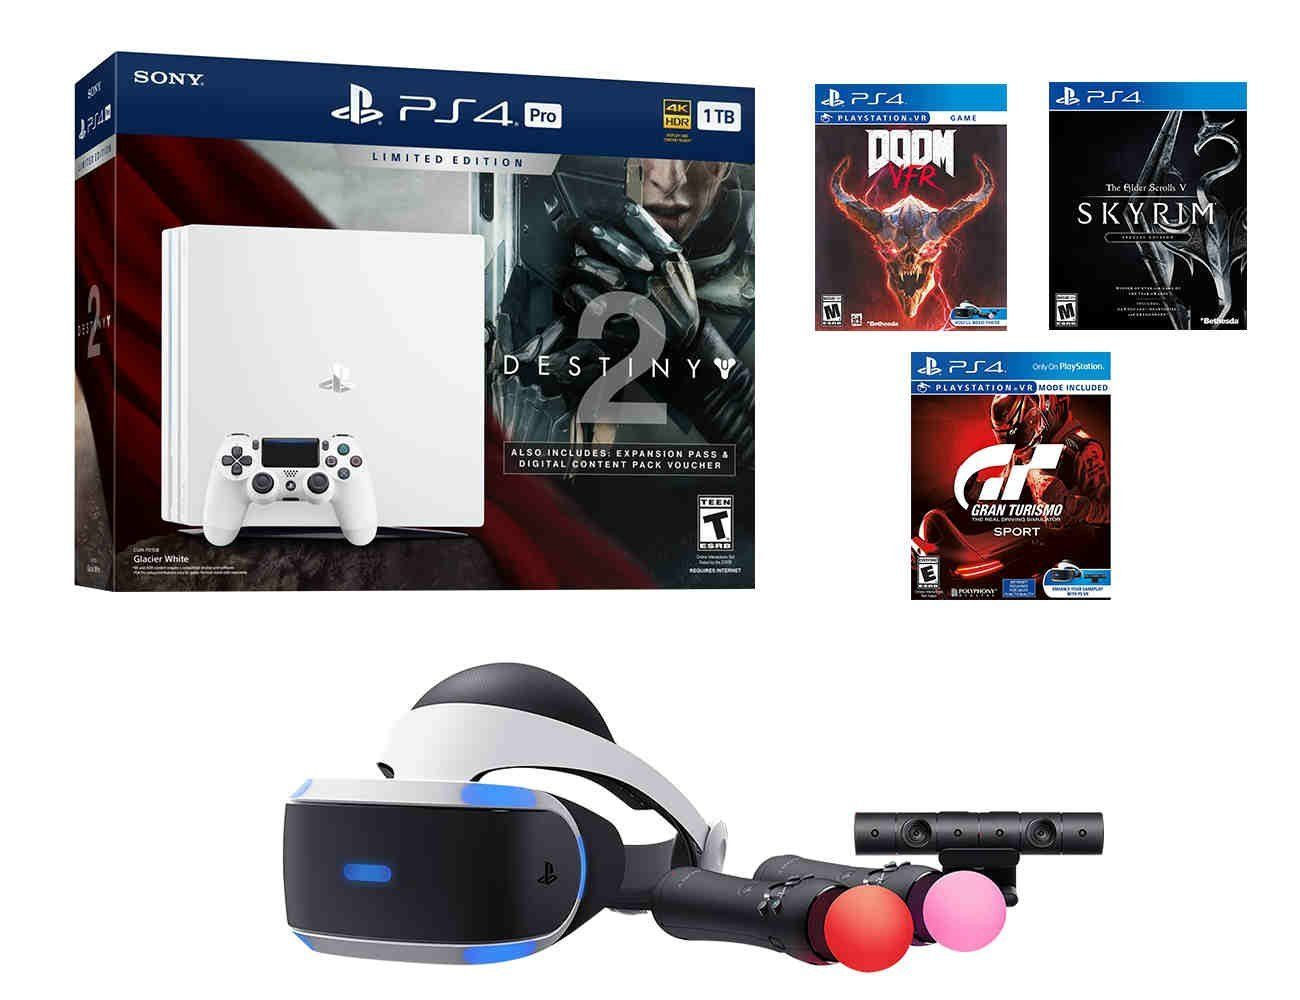 PS4 SciFi Bundle (7 Items) PS4 Pro 1TB Console with